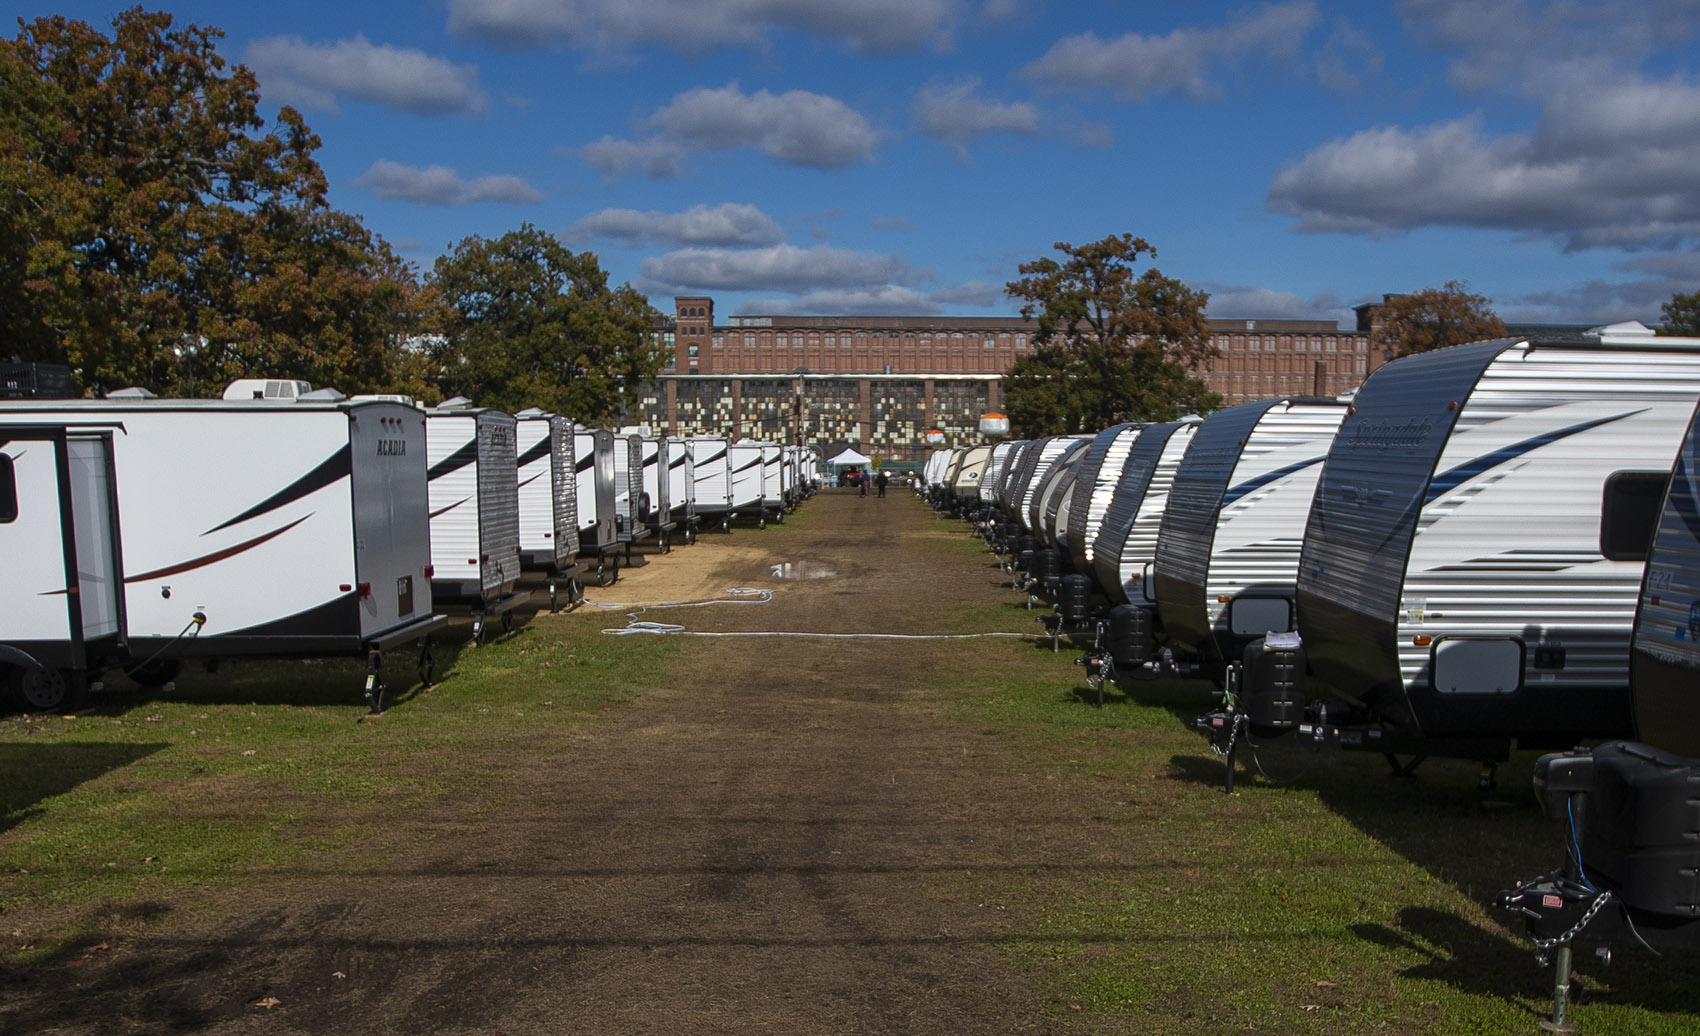 FEMA trailers at the O'Connell South Common in Lawrence are being used as alternative housing for people who were affected by the gas explosions in the Merrimack Valley. (Jesse Costa/WBUR)